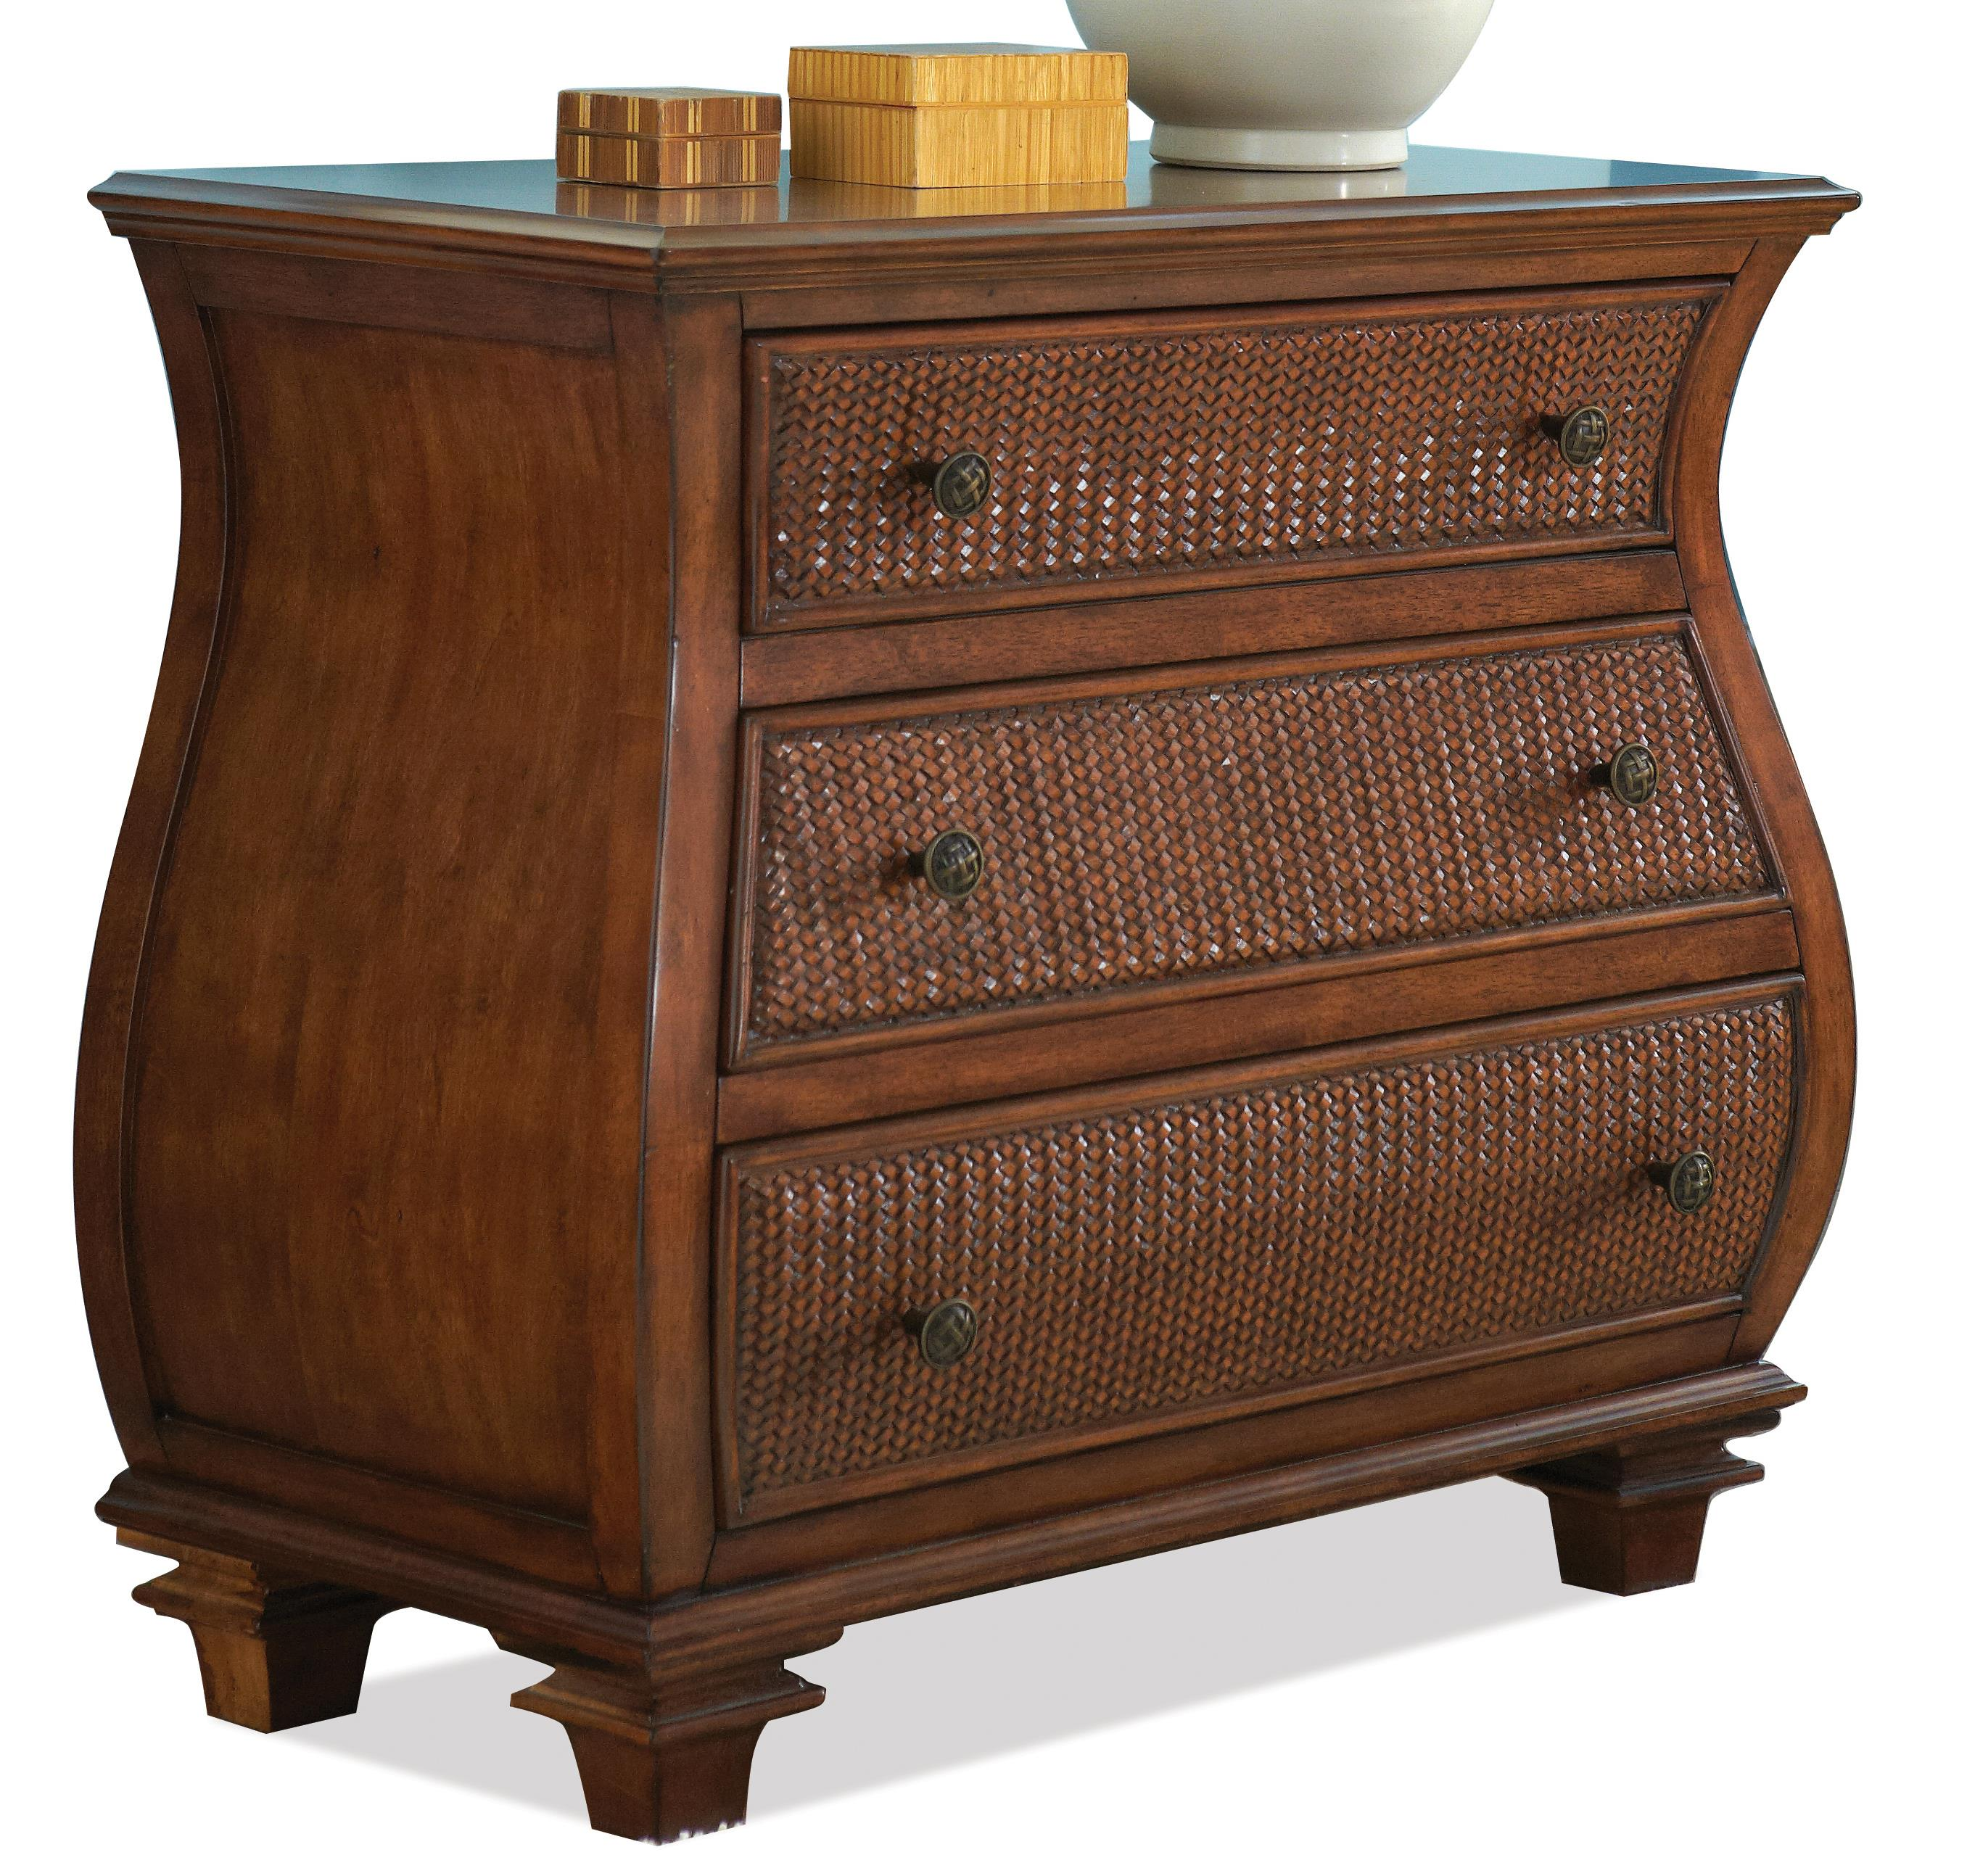 Riverside Furniture Windward Bay Bombe Chest  - Item Number: 42866